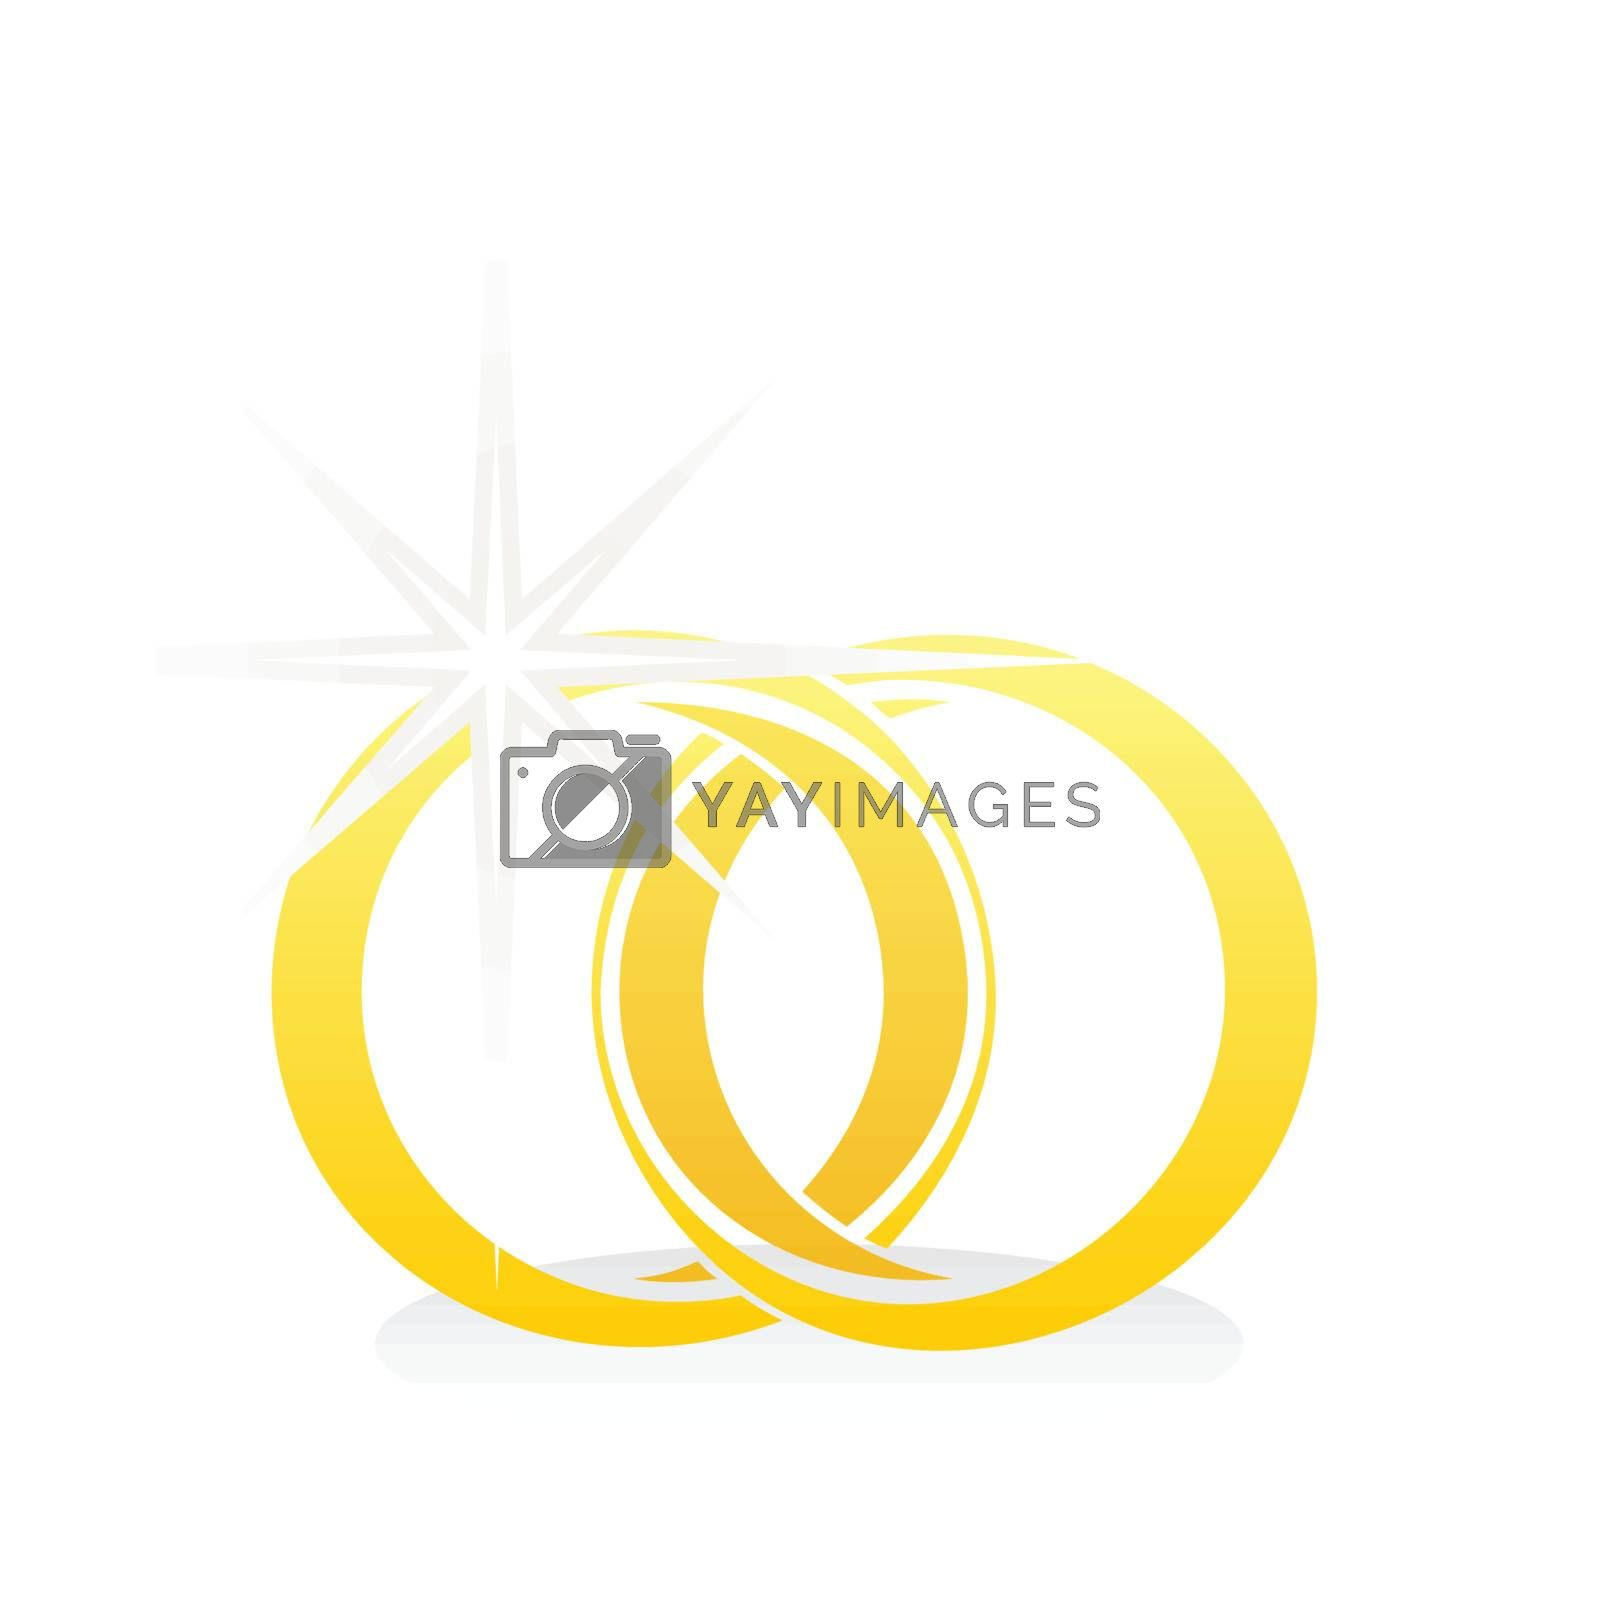 Two gold wedding rings. A vector illustration